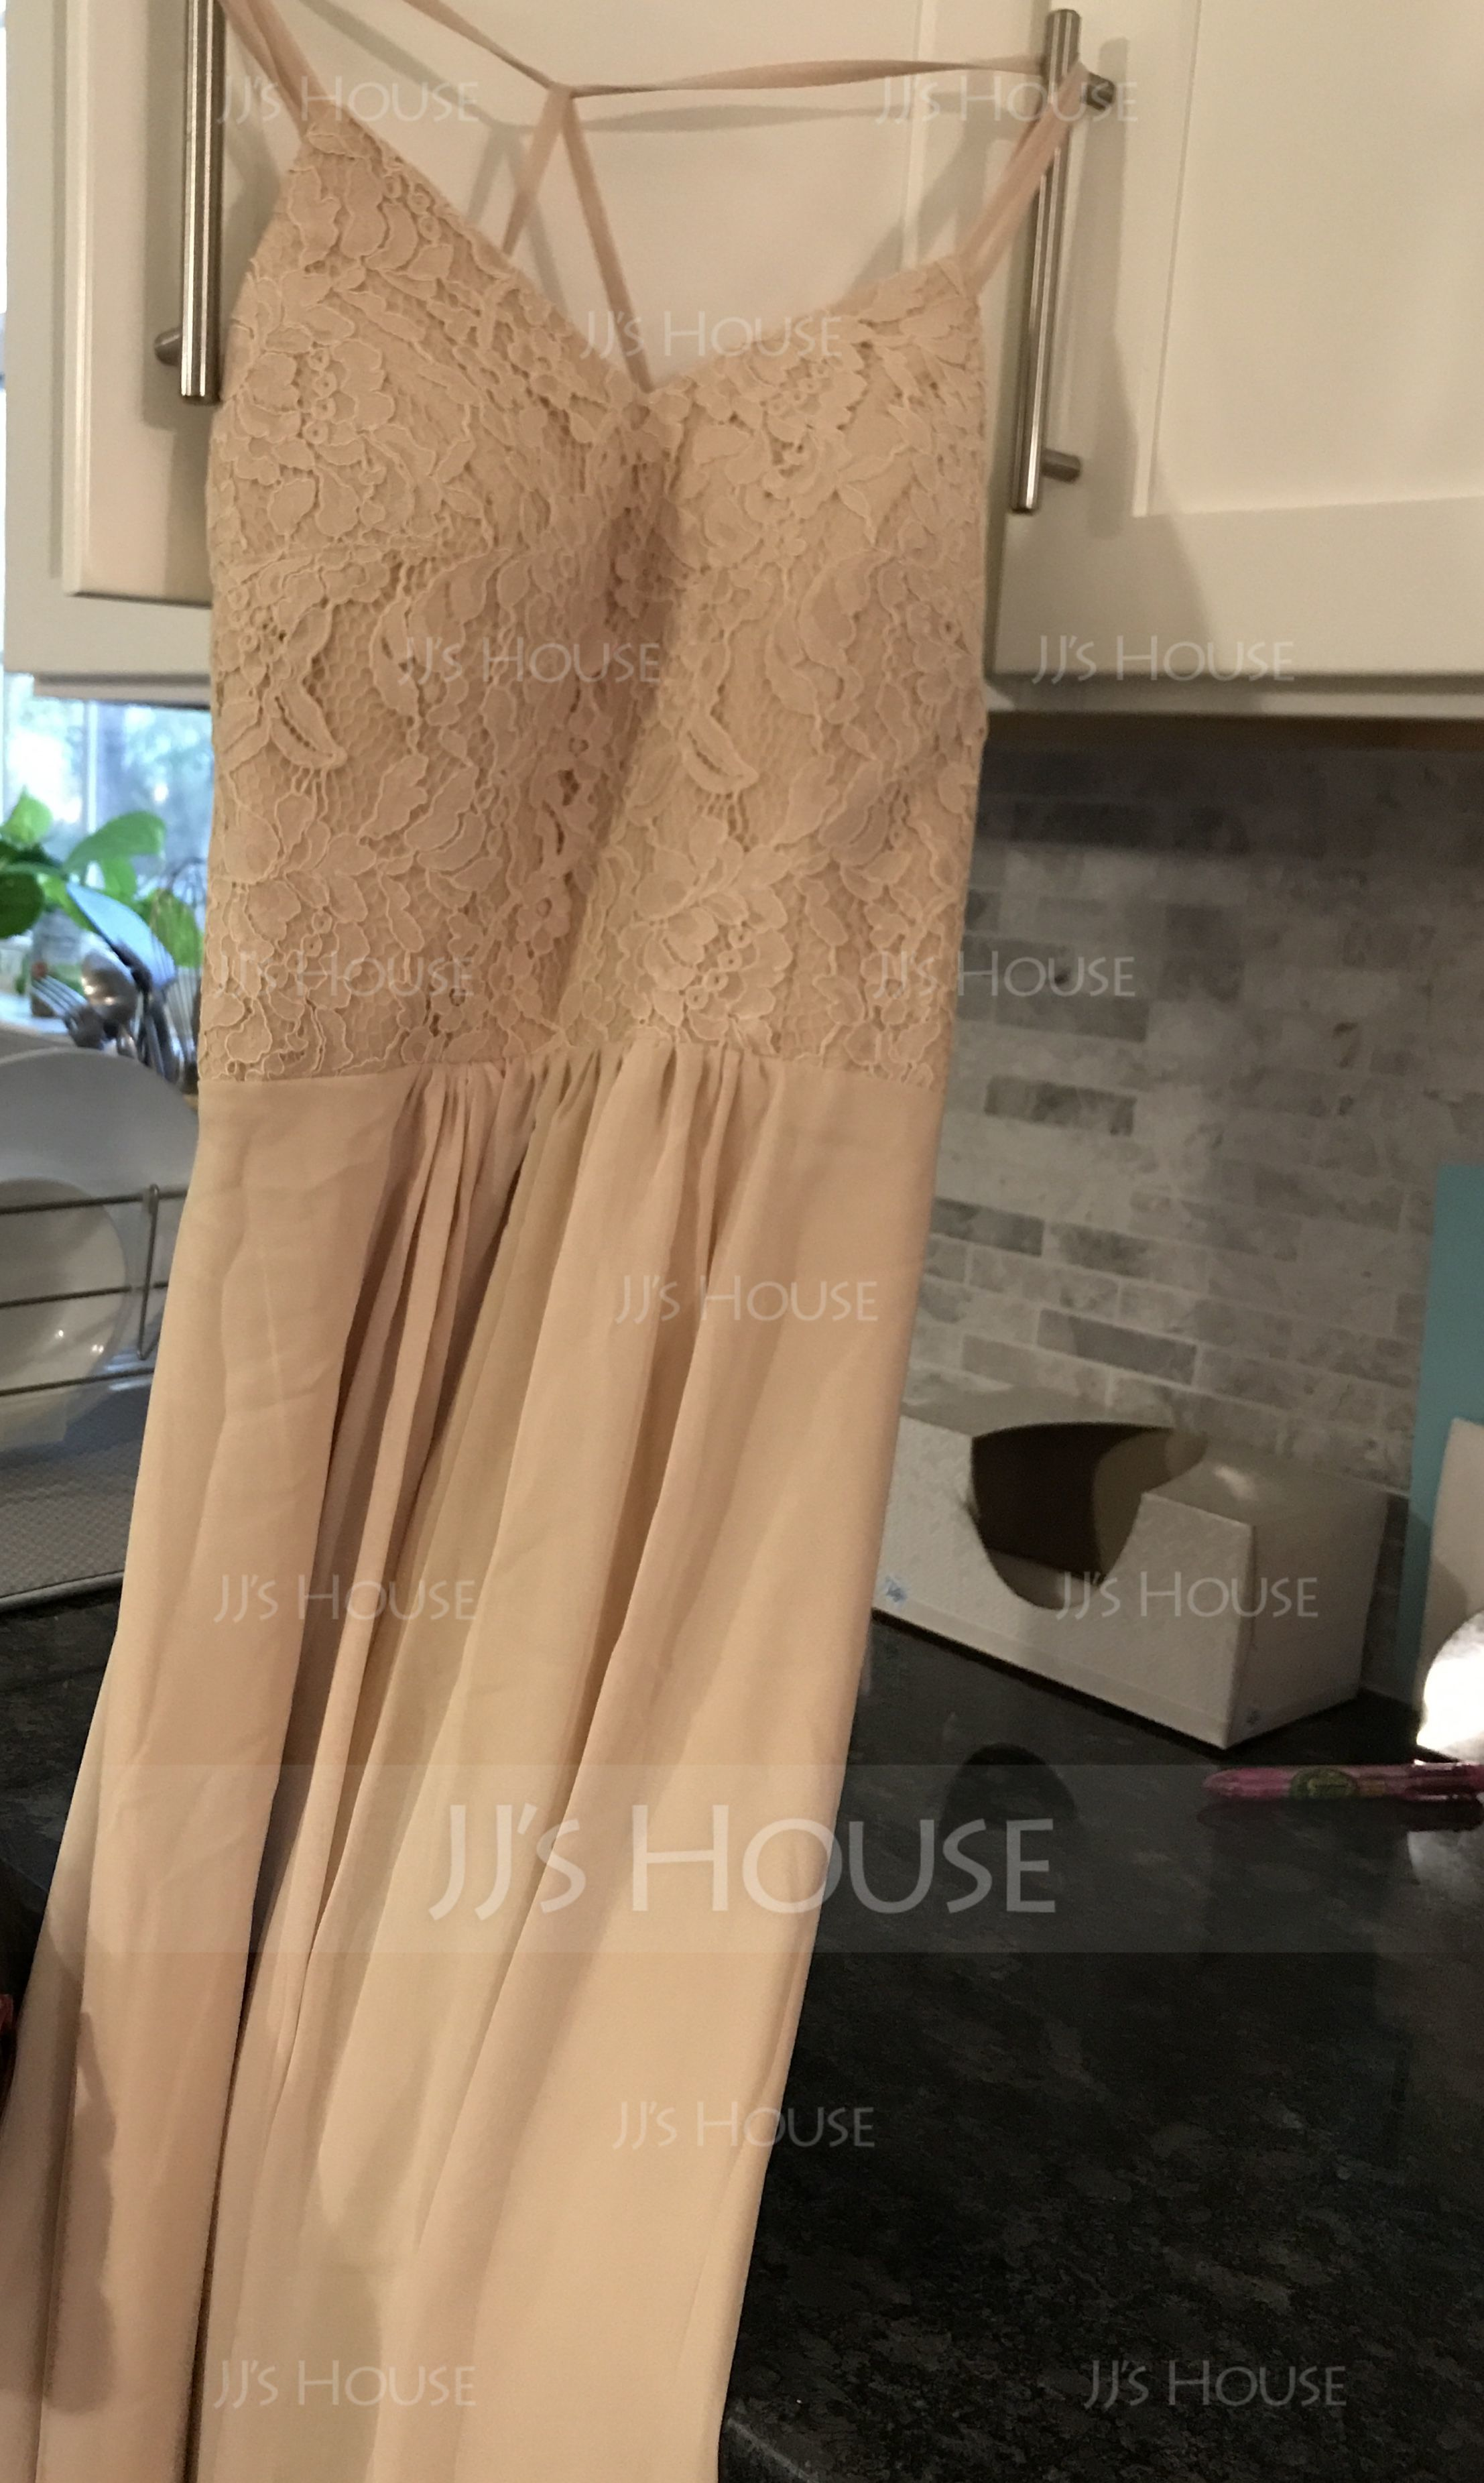 A-Line/Princess Halter Floor-Length Chiffon Lace Bridesmaid Dress With Bow(s) Split Front (007165829)